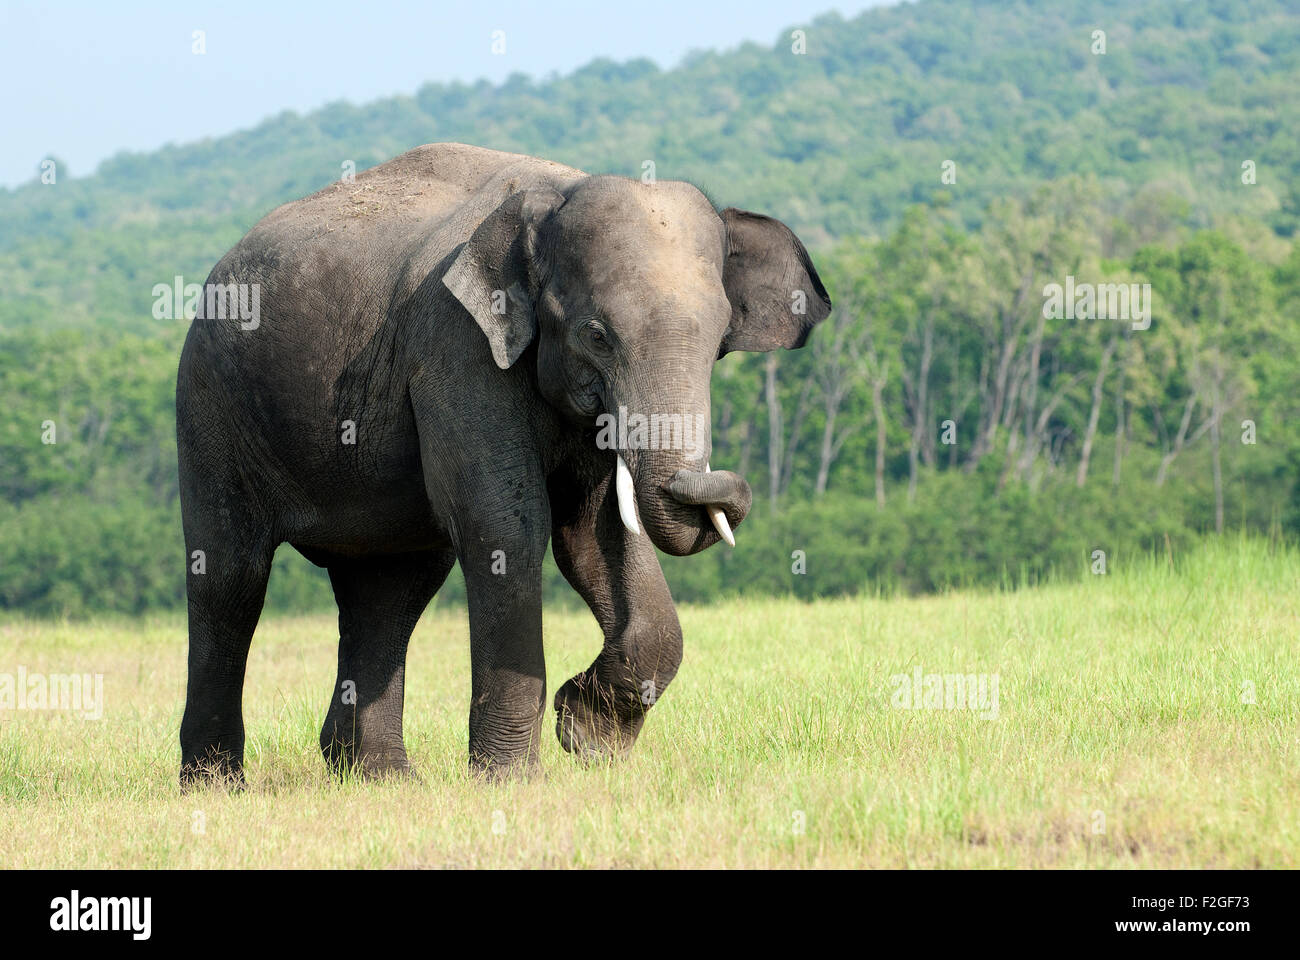 L'image de l'éléphant d'Asie (Elephas maximus) a été tourné en parc national Photo Stock